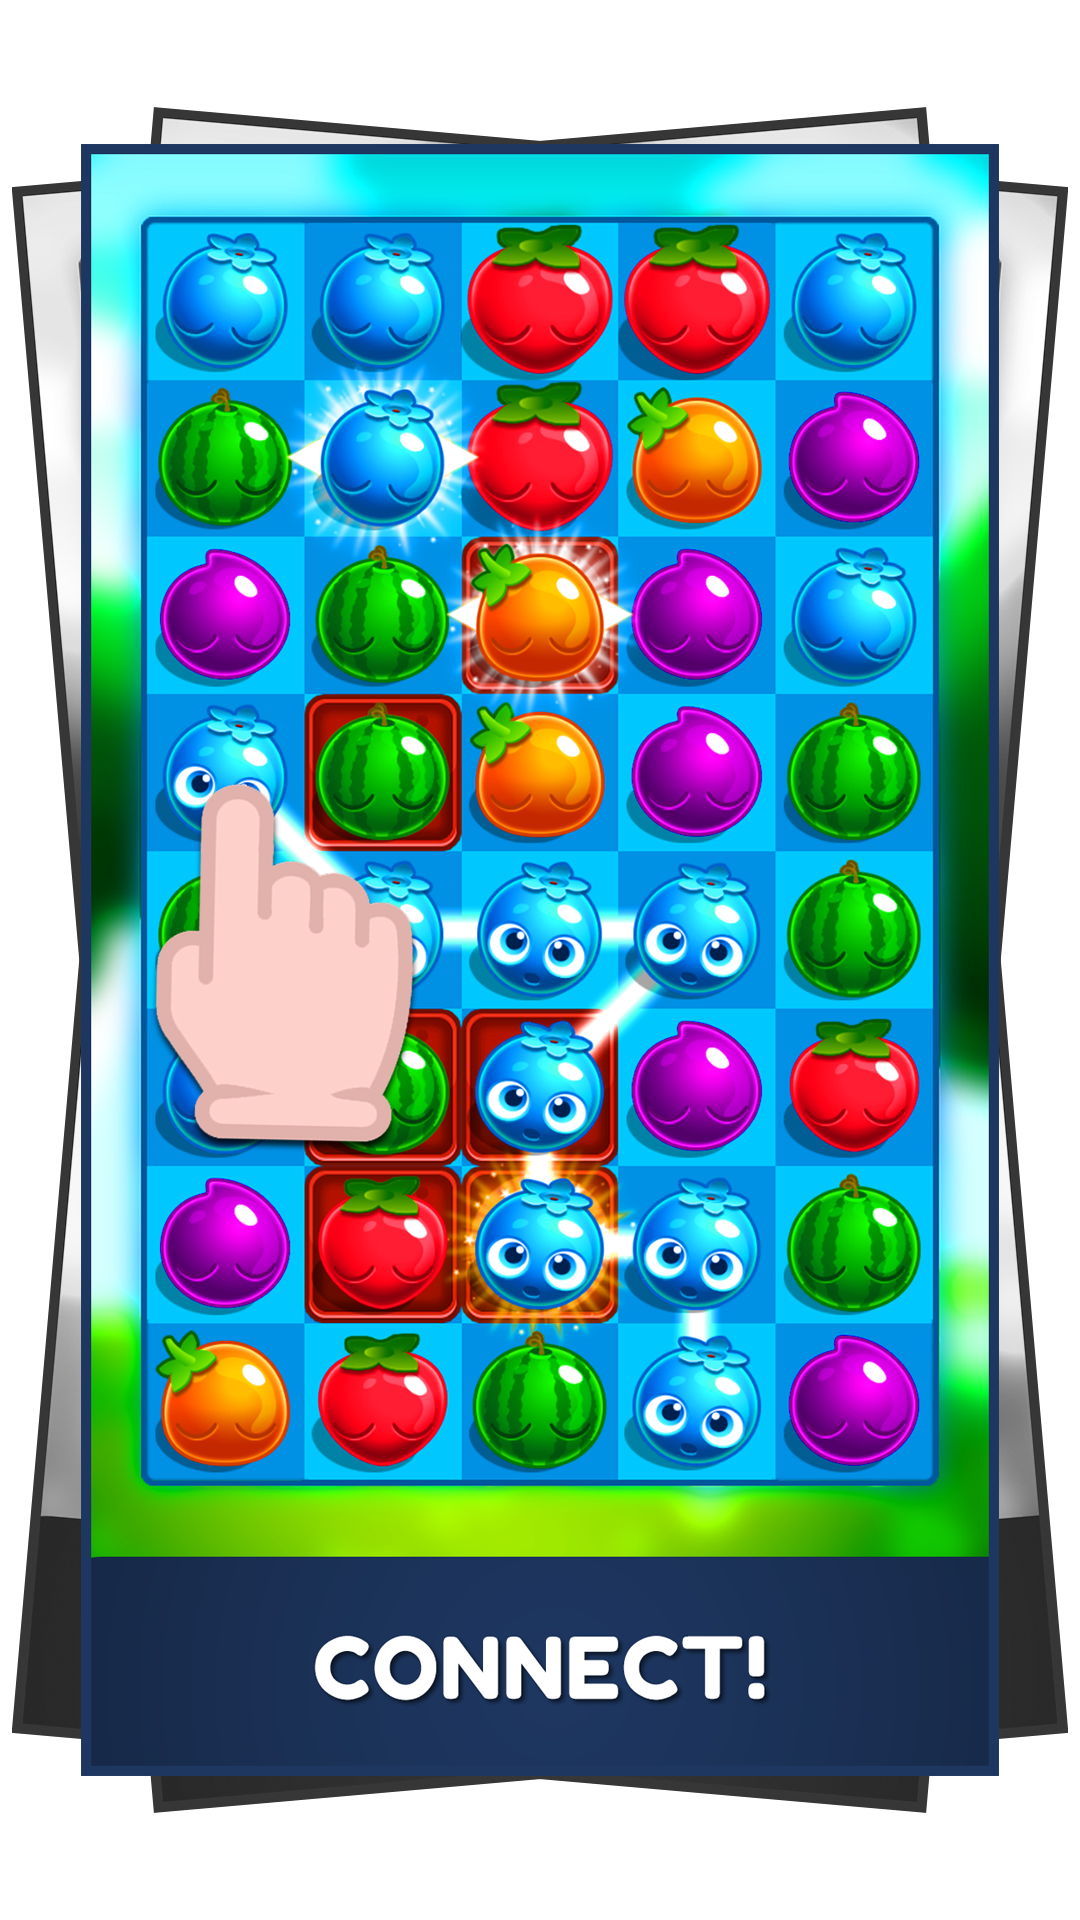 Toy Blast For Kindle Fire : Toy block crush blast match toon hexa puzzle amazon